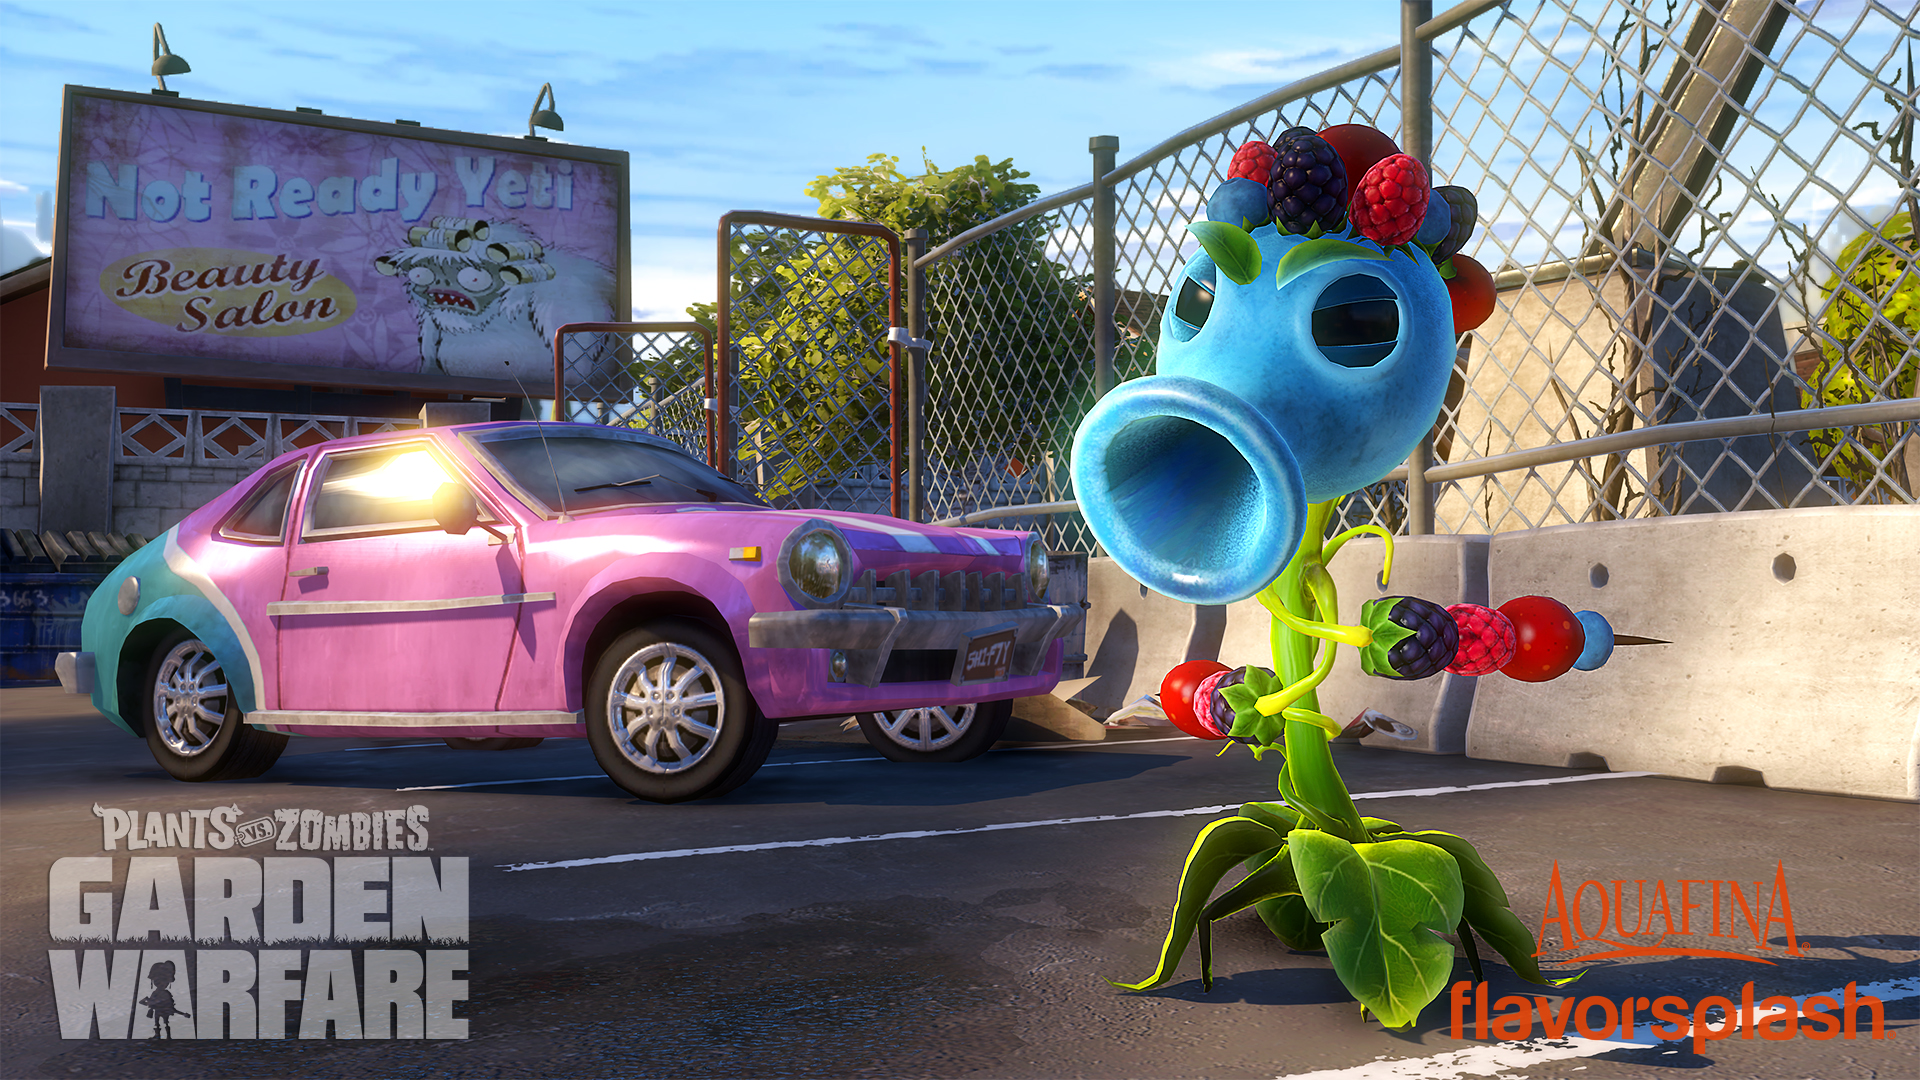 And Now Some Free Garden Warfare Content From PopCap's Sponsors